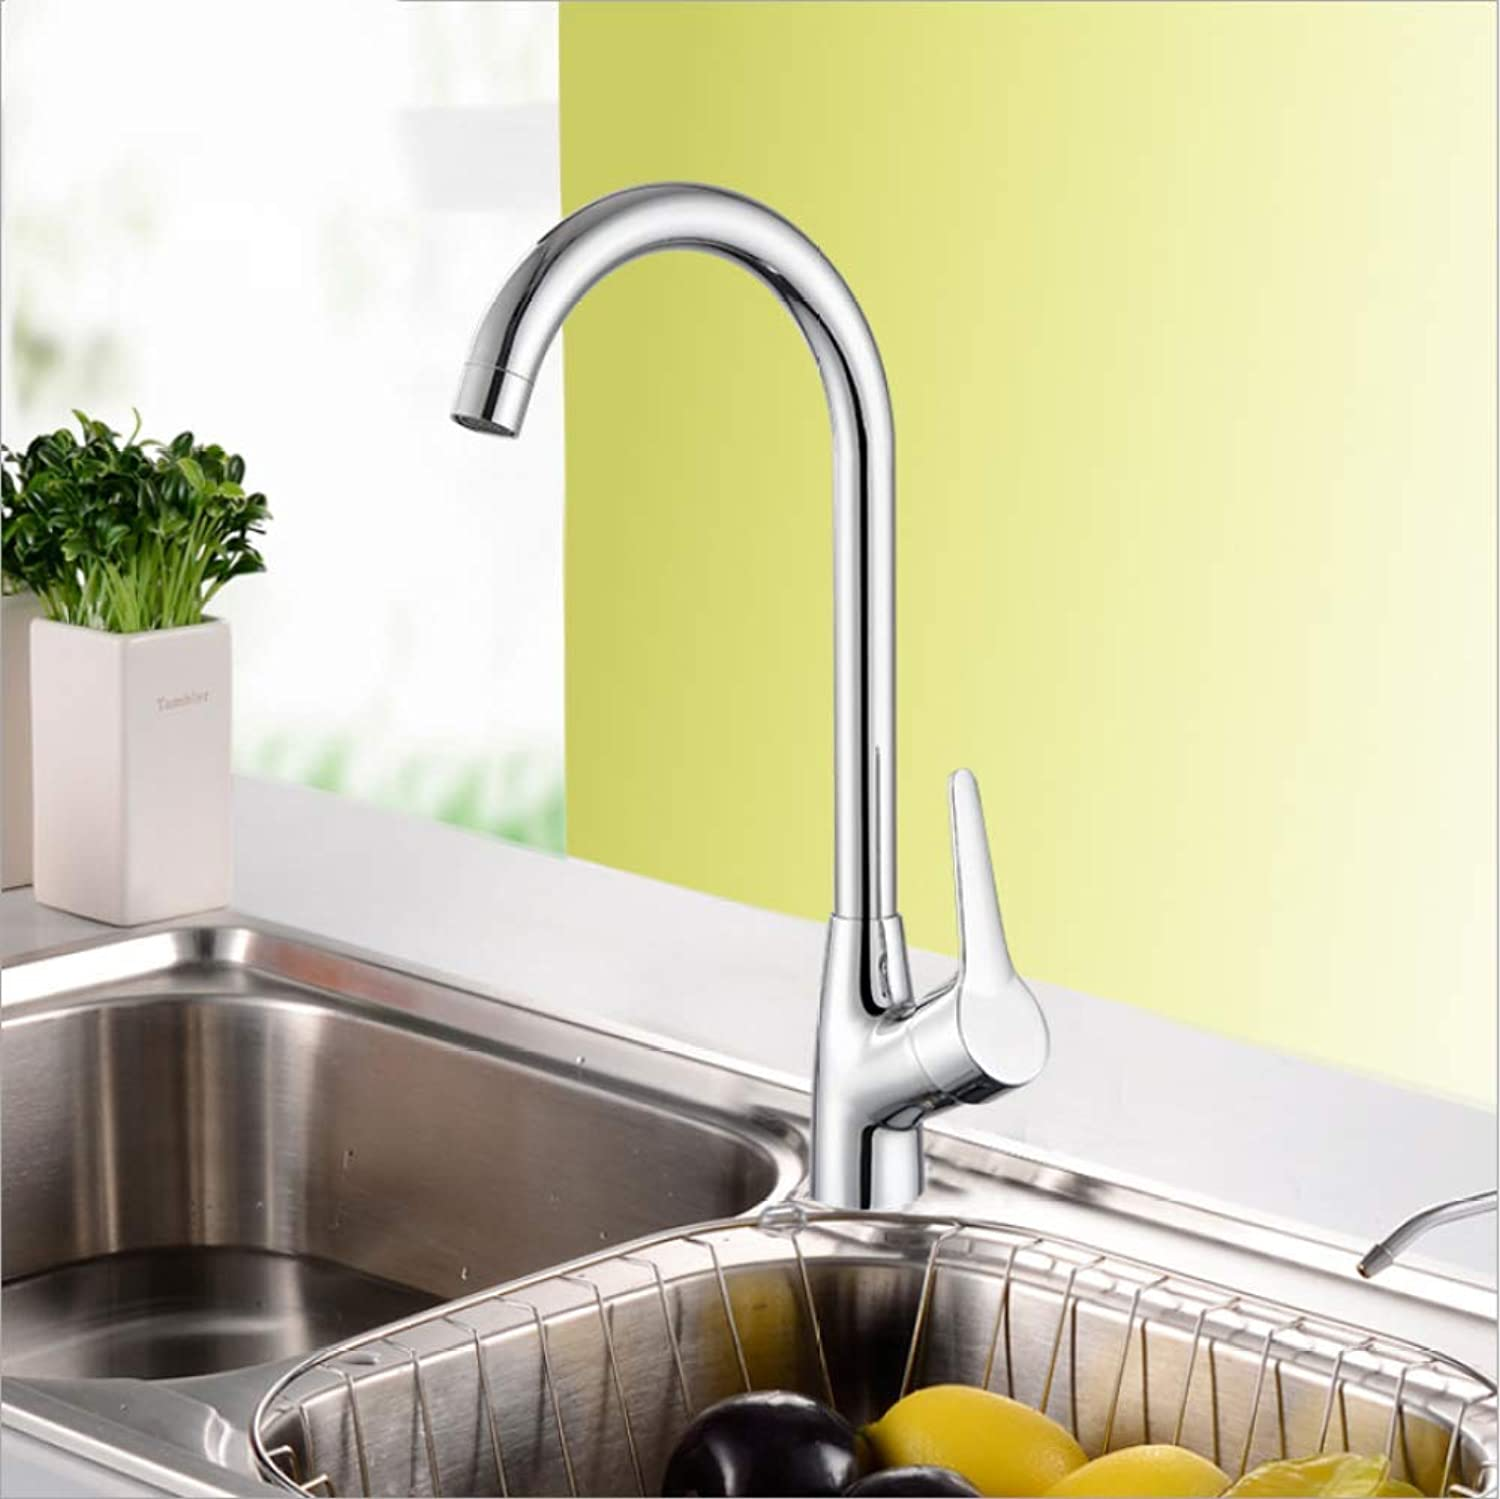 MWPO faucet faucet aucet kitchen faucet kitchen faucet over countertop bathroom faucet faucet hot and cold water sink faucet